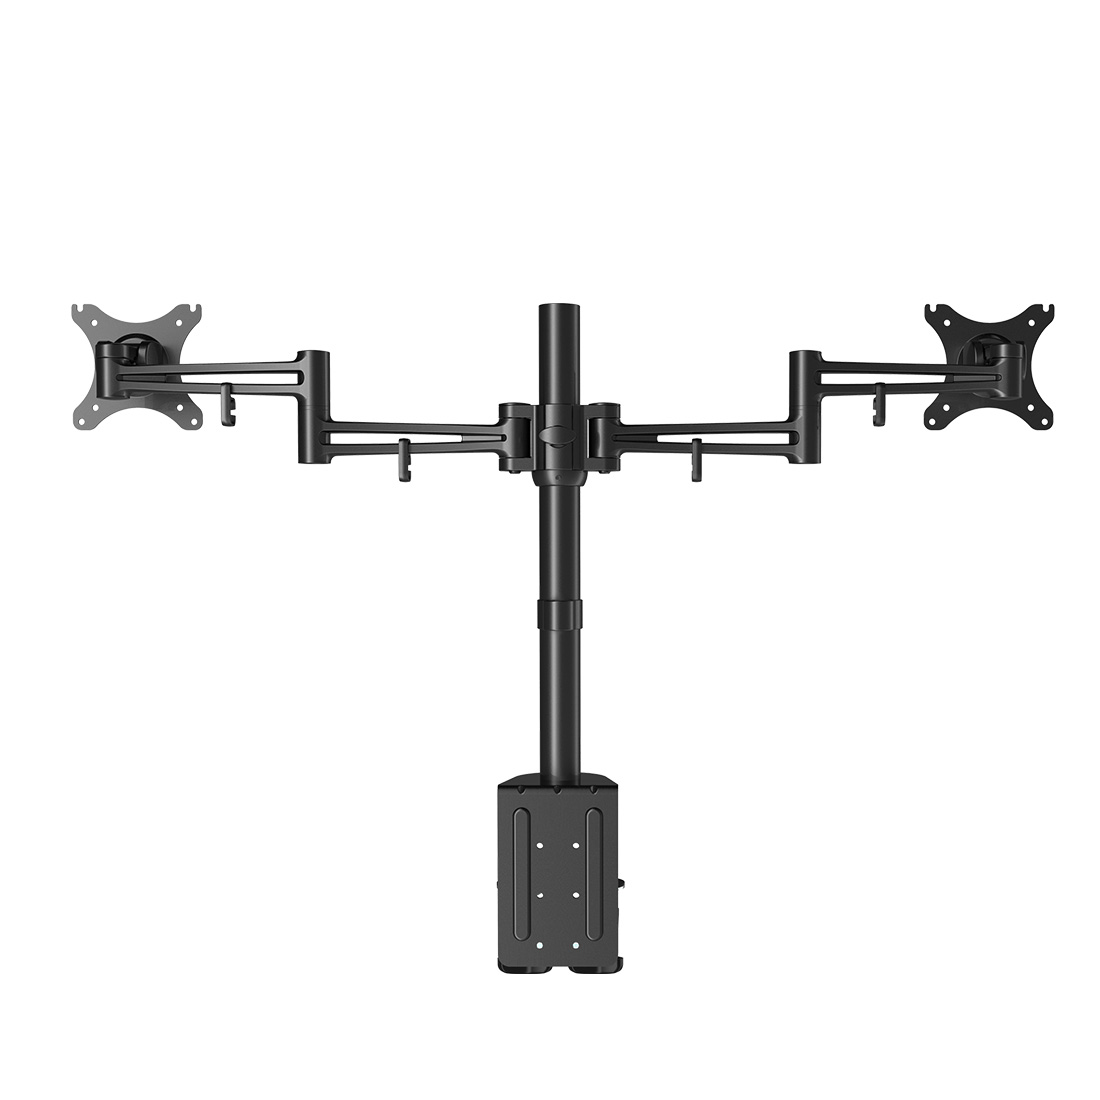 LOCTEK D2D FULL MOTION DUAL ARM DESK MONITOR MOUNT STAND